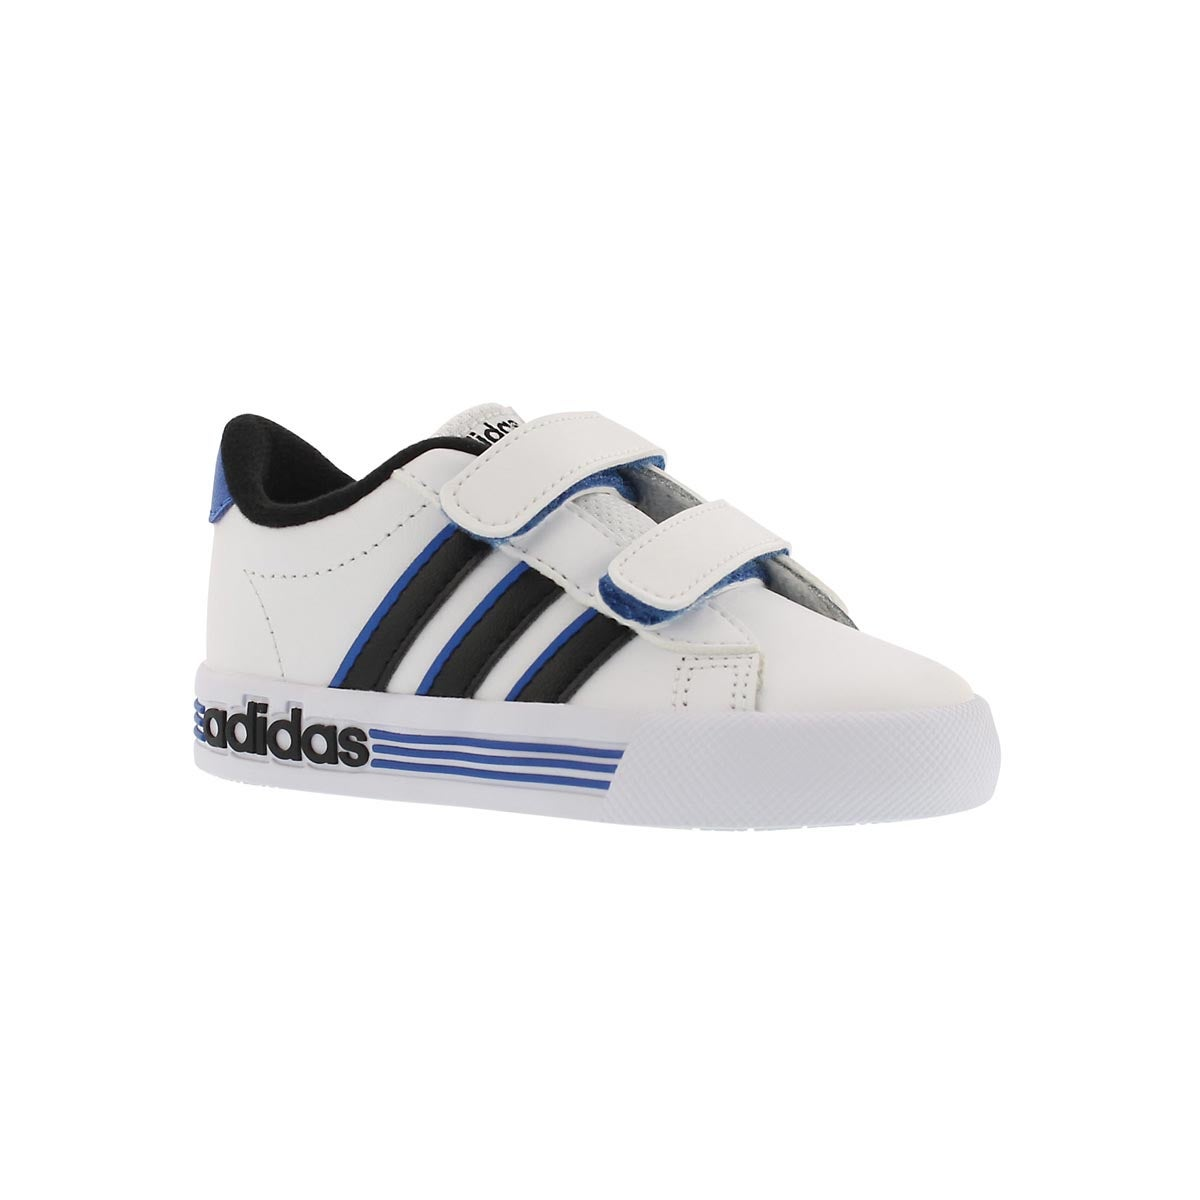 Infants' DAILY TEAM white/blue sneakers